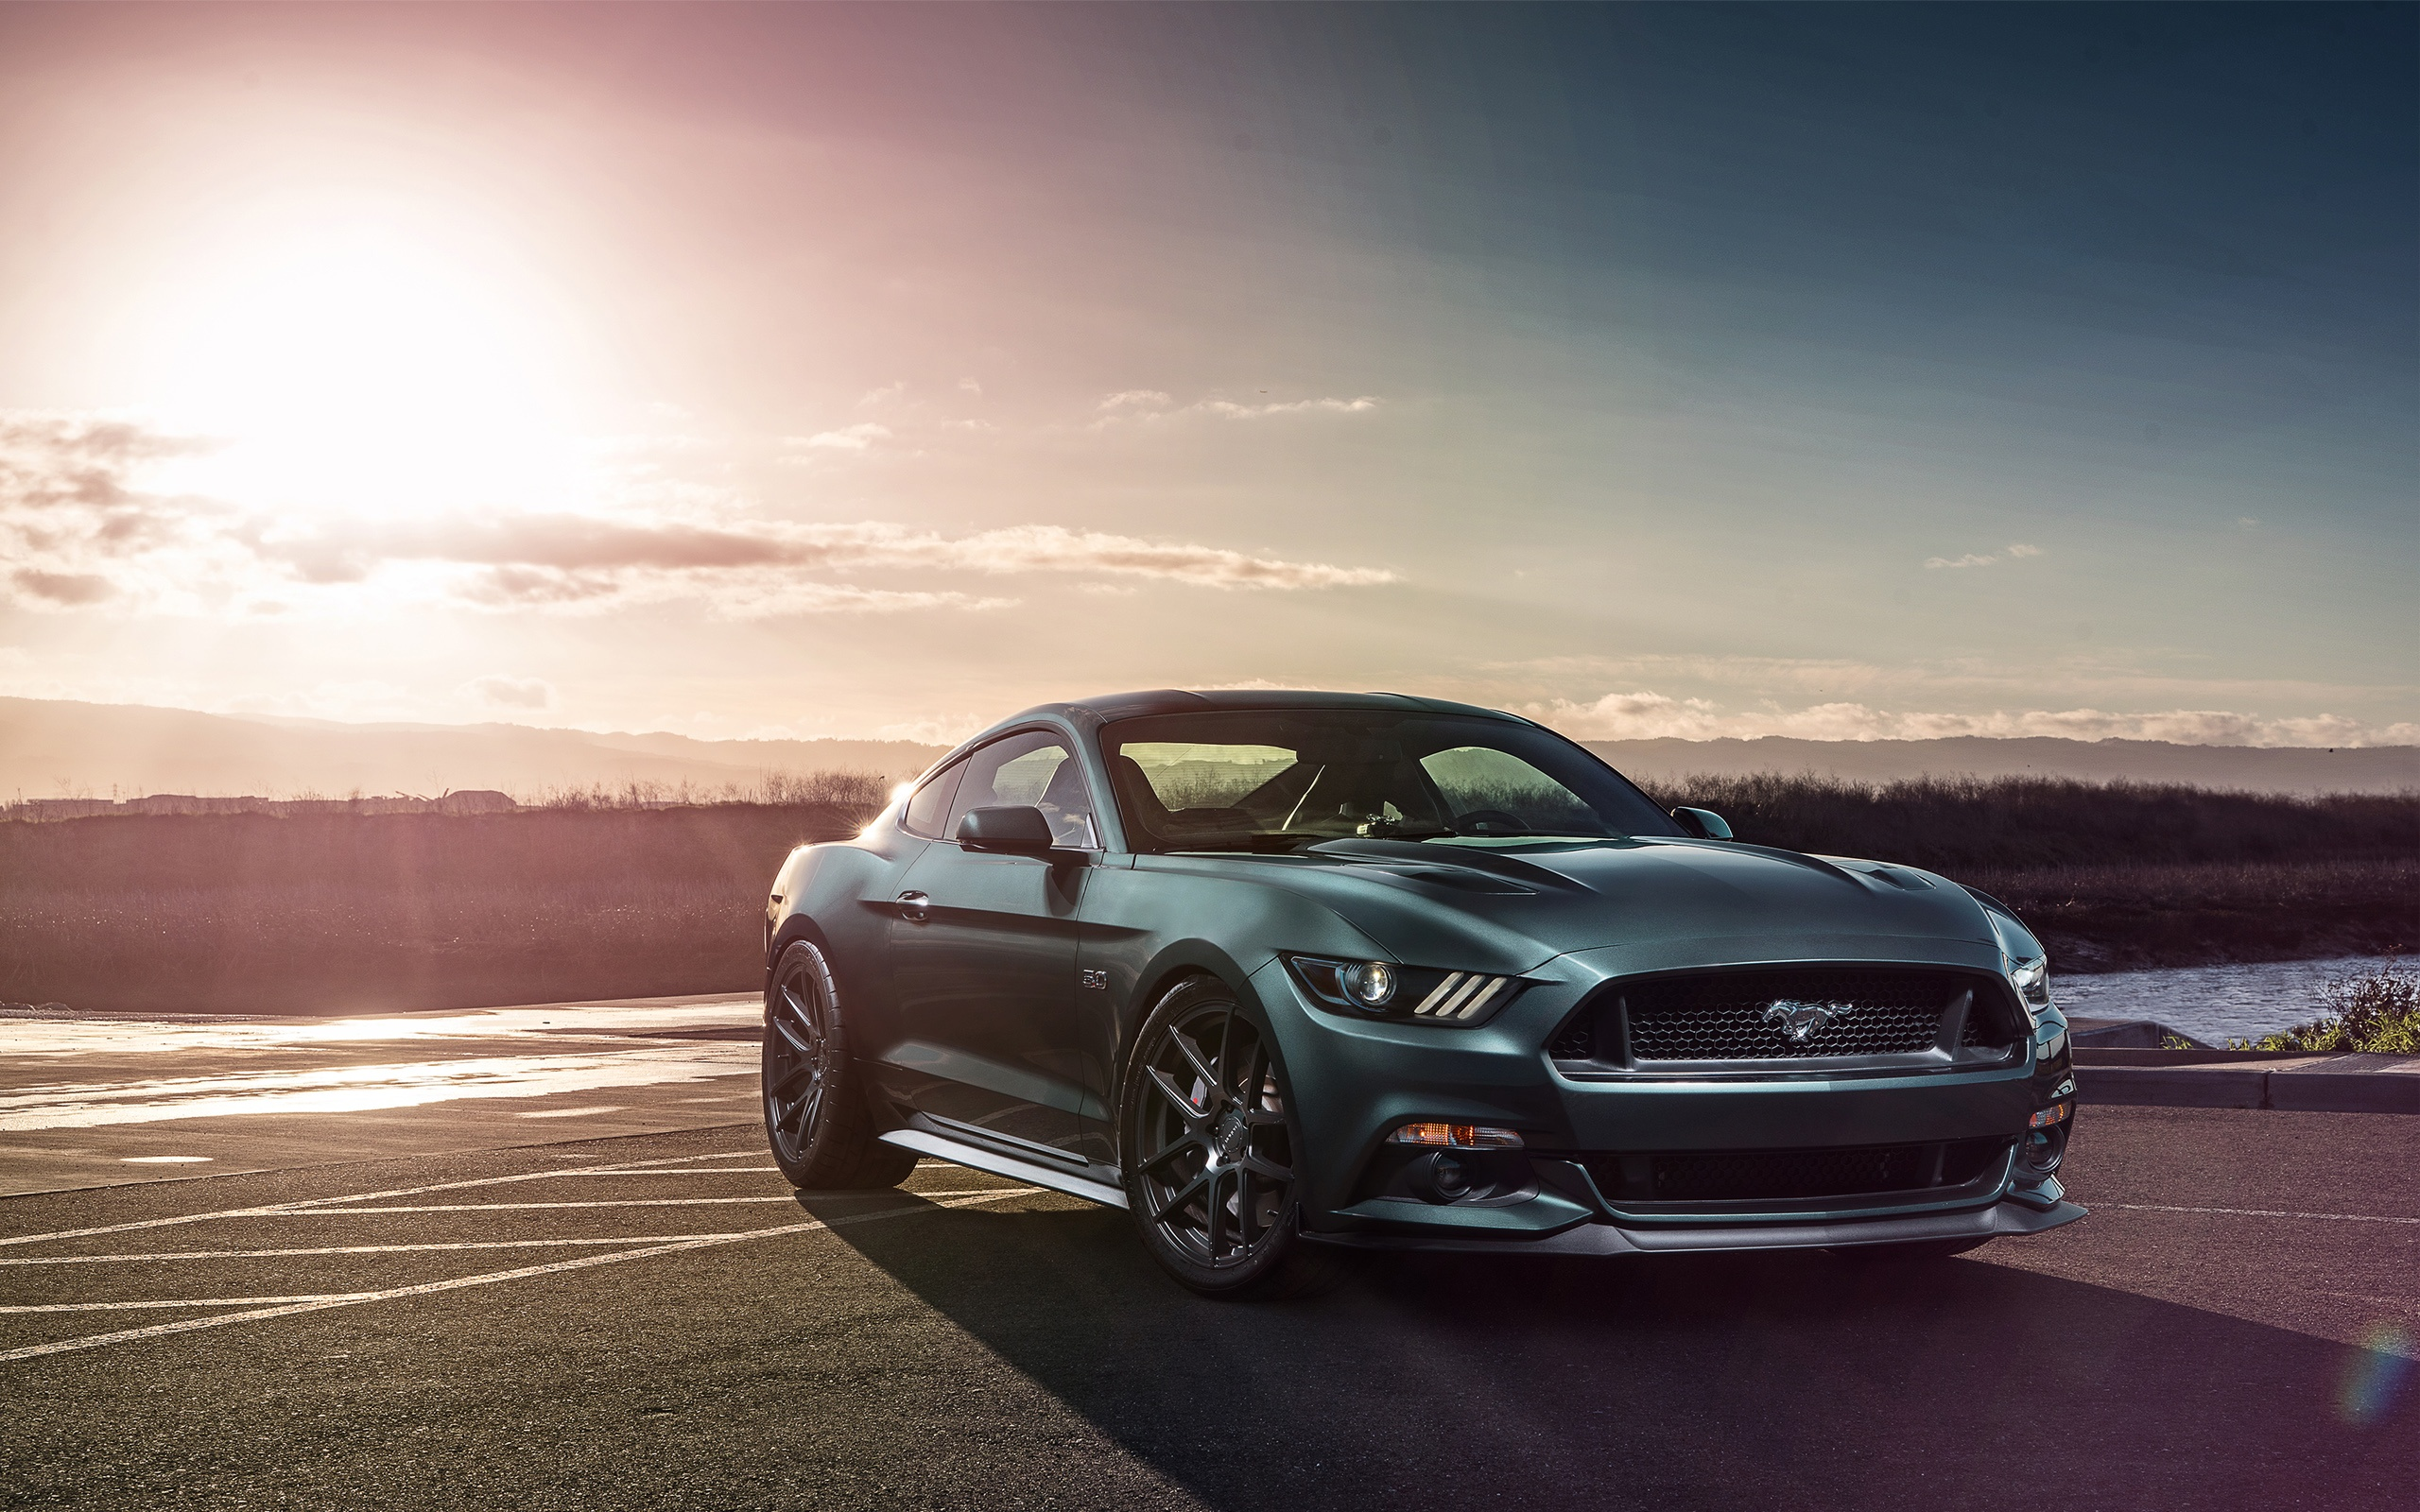 2560x1600 - Ford Mustang GT Wallpapers 17